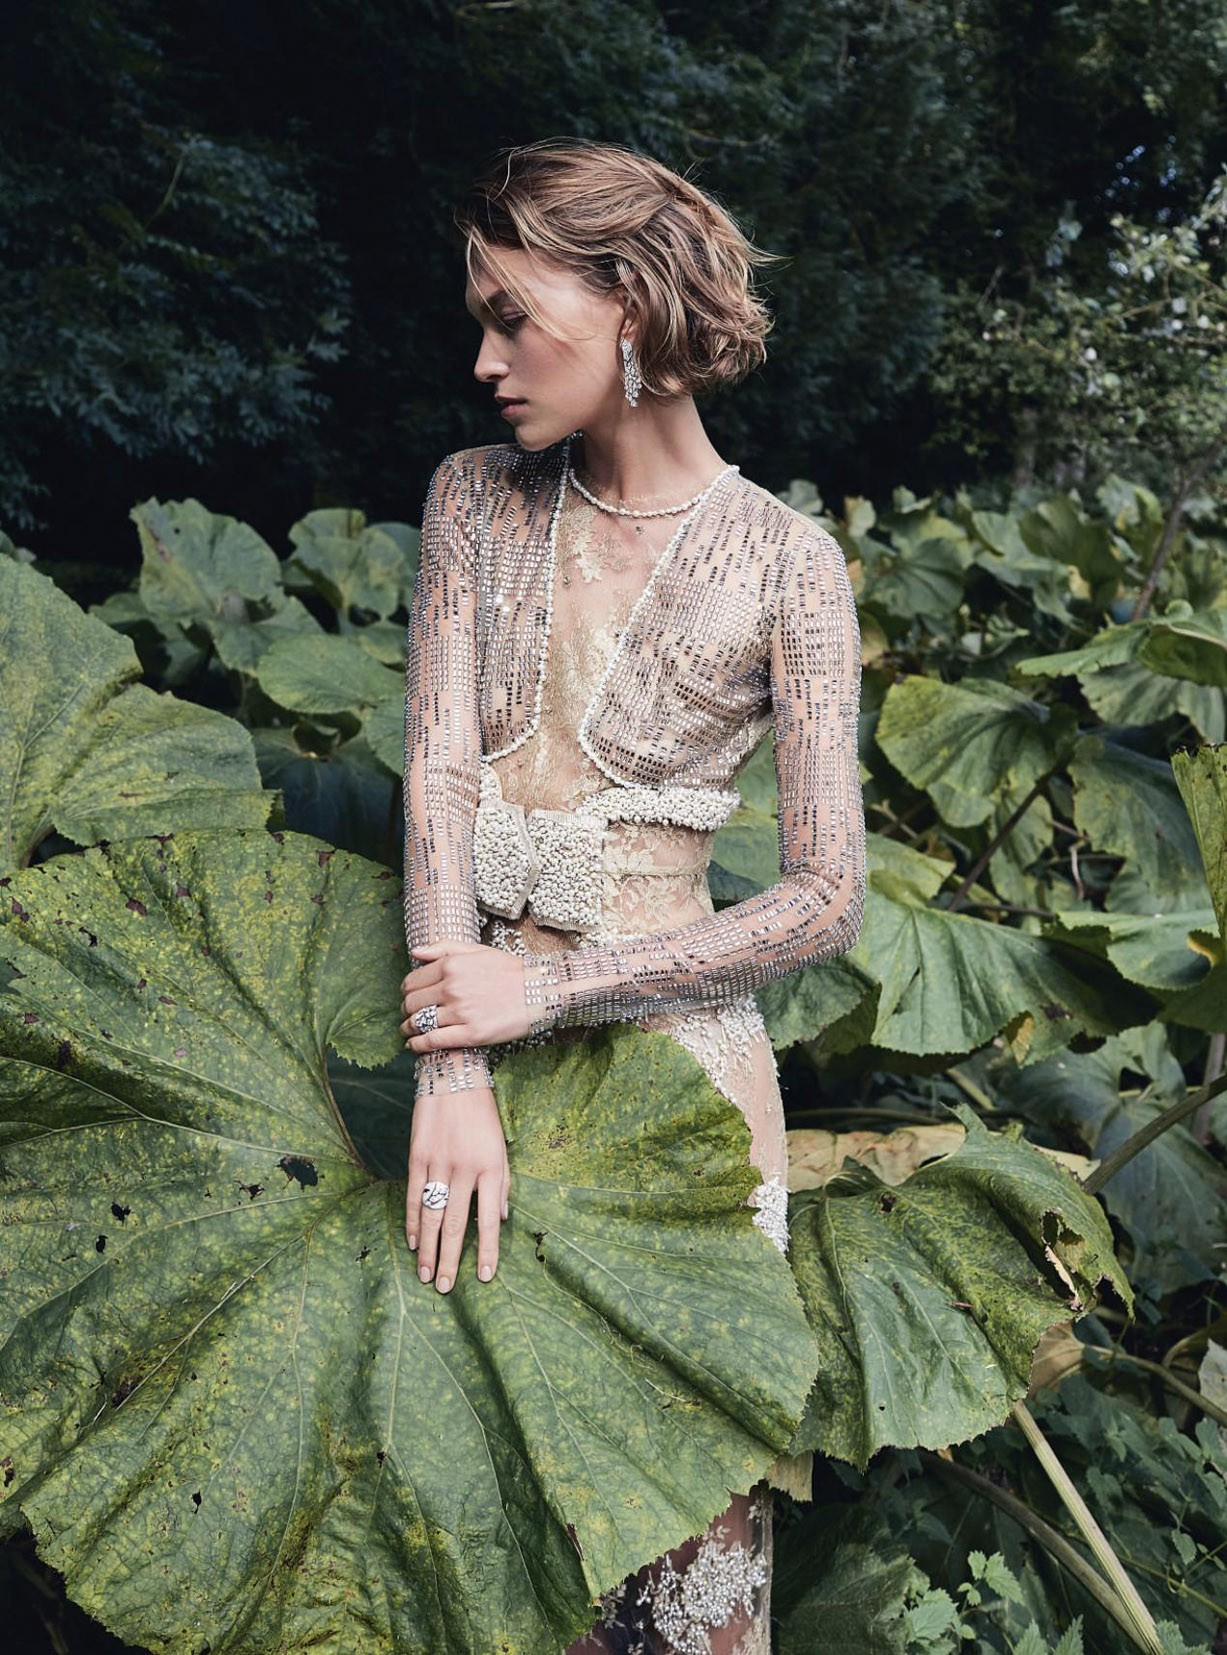 Конь, барабан и погоня - Аризона Мьюз / Arizona Muse by Agata Pospieszynska - Harper's Bazaar UK january 2018